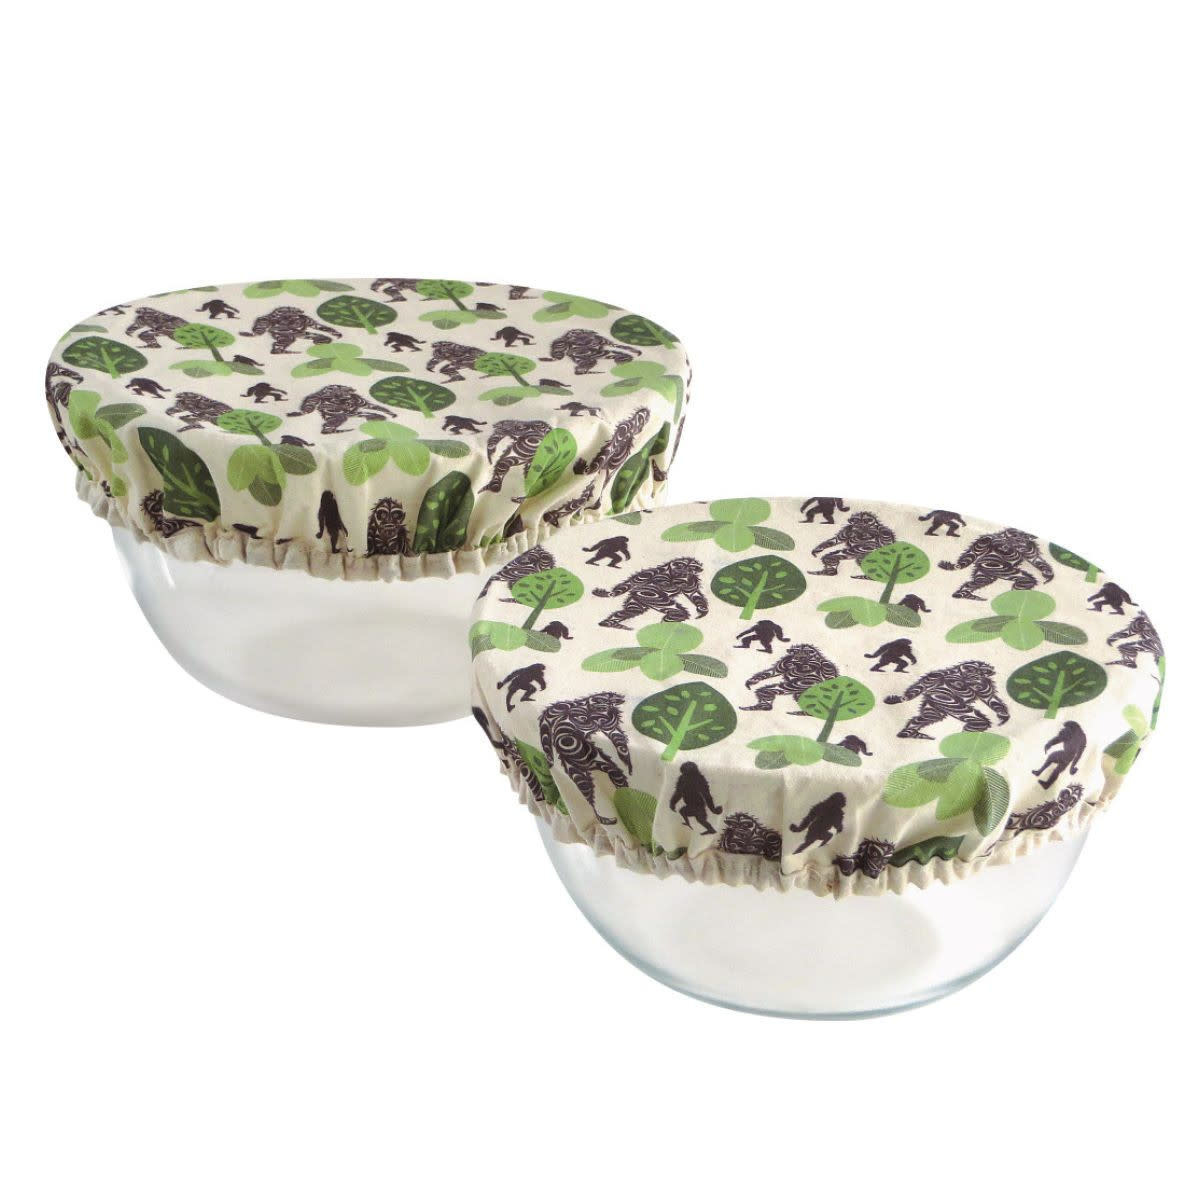 Set of 2 Reusable Bowl Covers Sasquatch by Francis Horne Sr.-1